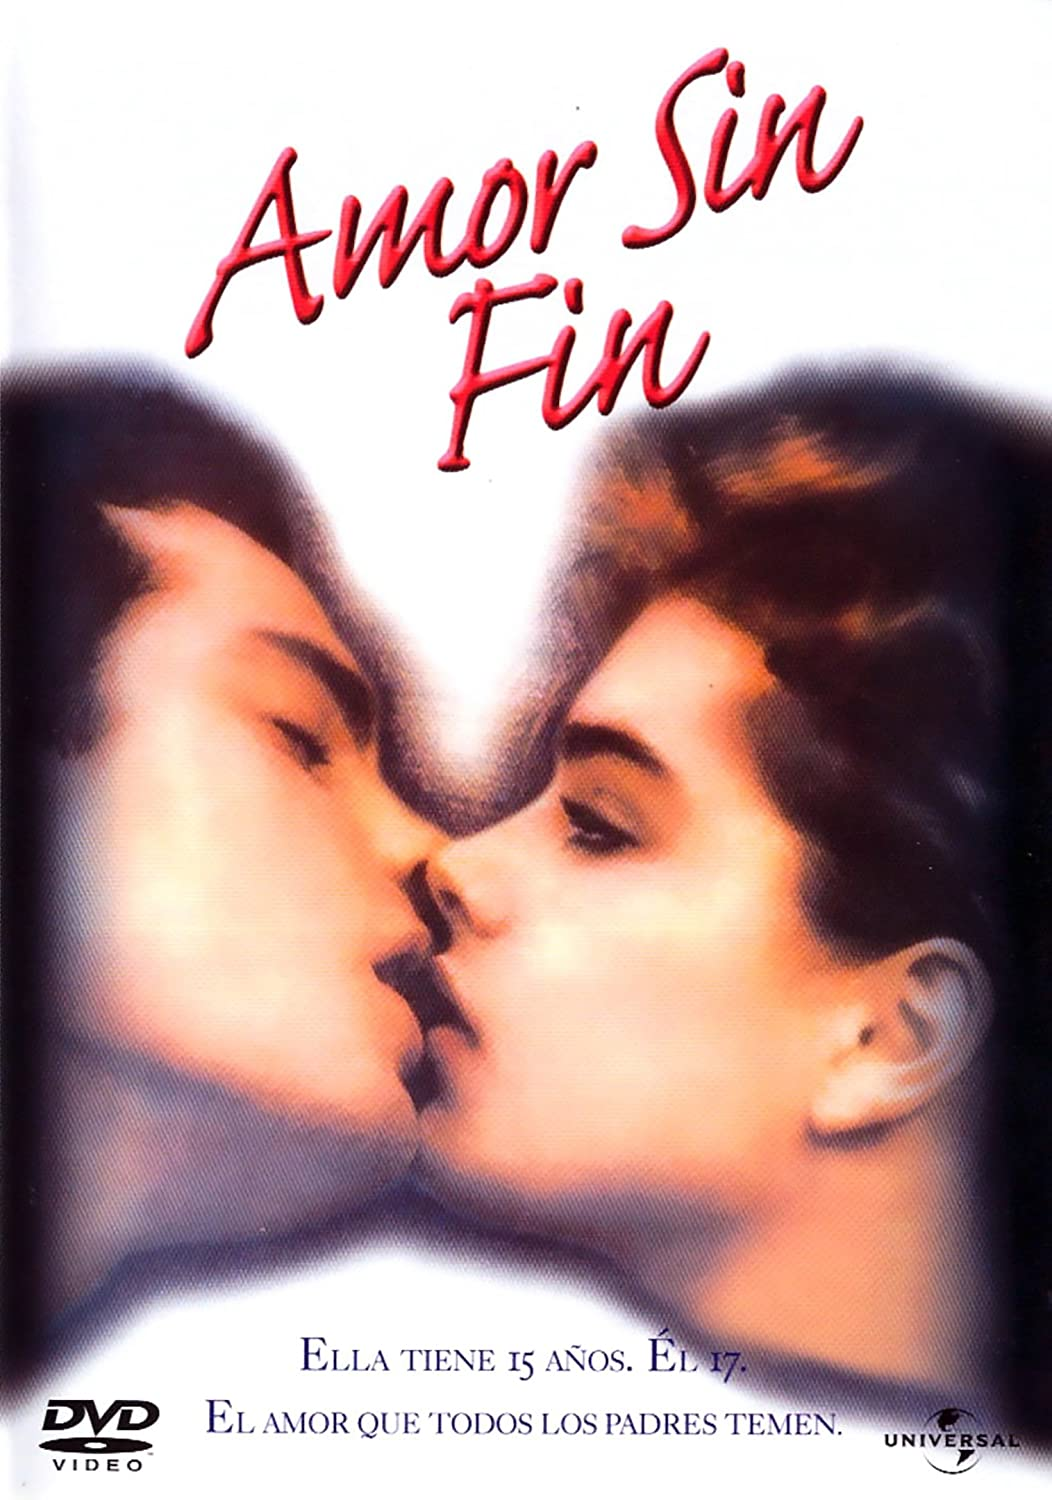 Amor Sin Fin Dvd Amazon Es Brokee Shields Martin Hewitt Shirley Knight Richard Kiley James Spader Robert Moore Don Murray Beatrice Straight Ian Ziering Franco Zeffirelli Brokee Shields Martin Hewitt Cine Y Series